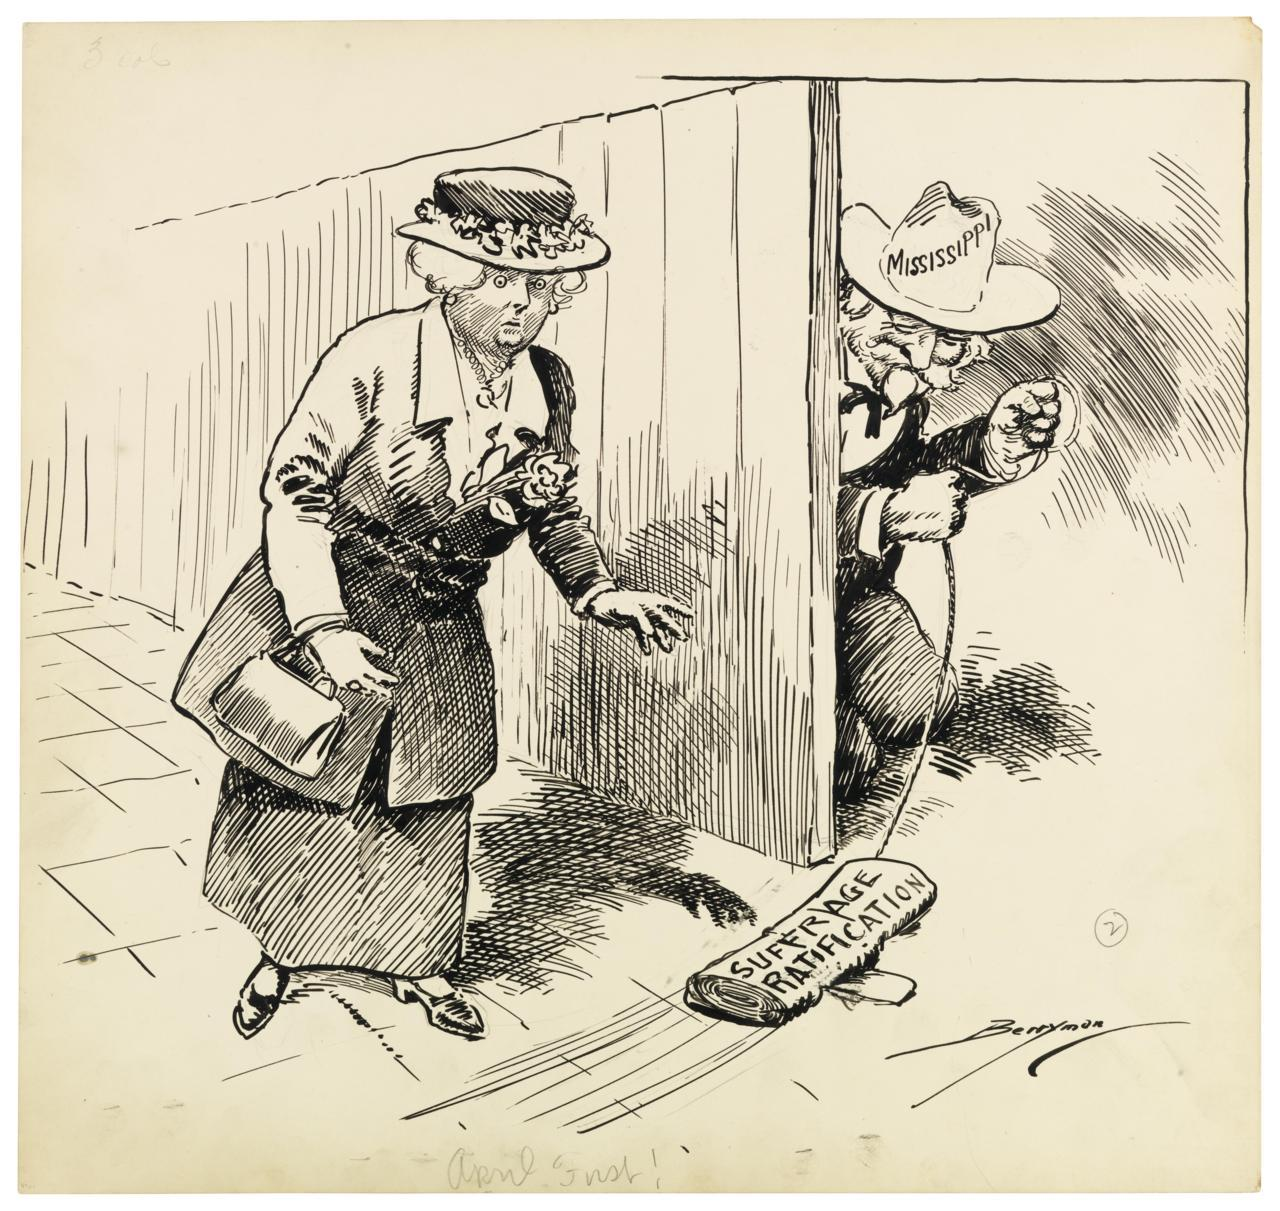 congressarchives:  On June 4, 1919, the suffrage amendment passed both houses of Congress and was sent to the states for ratification. Initial efforts to secure the right to vote for women in the late 1800's and early 1900's achieved some success at the state level, but women's organizations finally concluded that an amendment to the U.S. Constitution was essential for woman suffrage. World War I played an important role in helping women achieve the right to vote as many women began to work outside the home to support the war effort. In 1917 President Woodrow Wilson called for a Constitutional amendment, and though the House passed a woman suffrage amendment in 1918, it failed in the Senate, largely because of the opposition from southern states. After the amendment passed Congress in 1919, many states quickly approved it, and on August 18, 1920 Tennessee became the 36th state to approve the amendment. Two weeks later, on August 26, Secretary of State Bainbridge Colby signed the certification that the required number of states had ratified the Nineteenth Amendment. However, in early 1920, five states rejected the amendment. Mississippi was among them. Political cartoonist Clifford K. Berryman portrays the Mississippi rejection as an April Fool's joke played on the suffrage movement. April First by Clifford K. Berryman, 4/1/1920, U.S. Senate Collection (ARC 6011595)